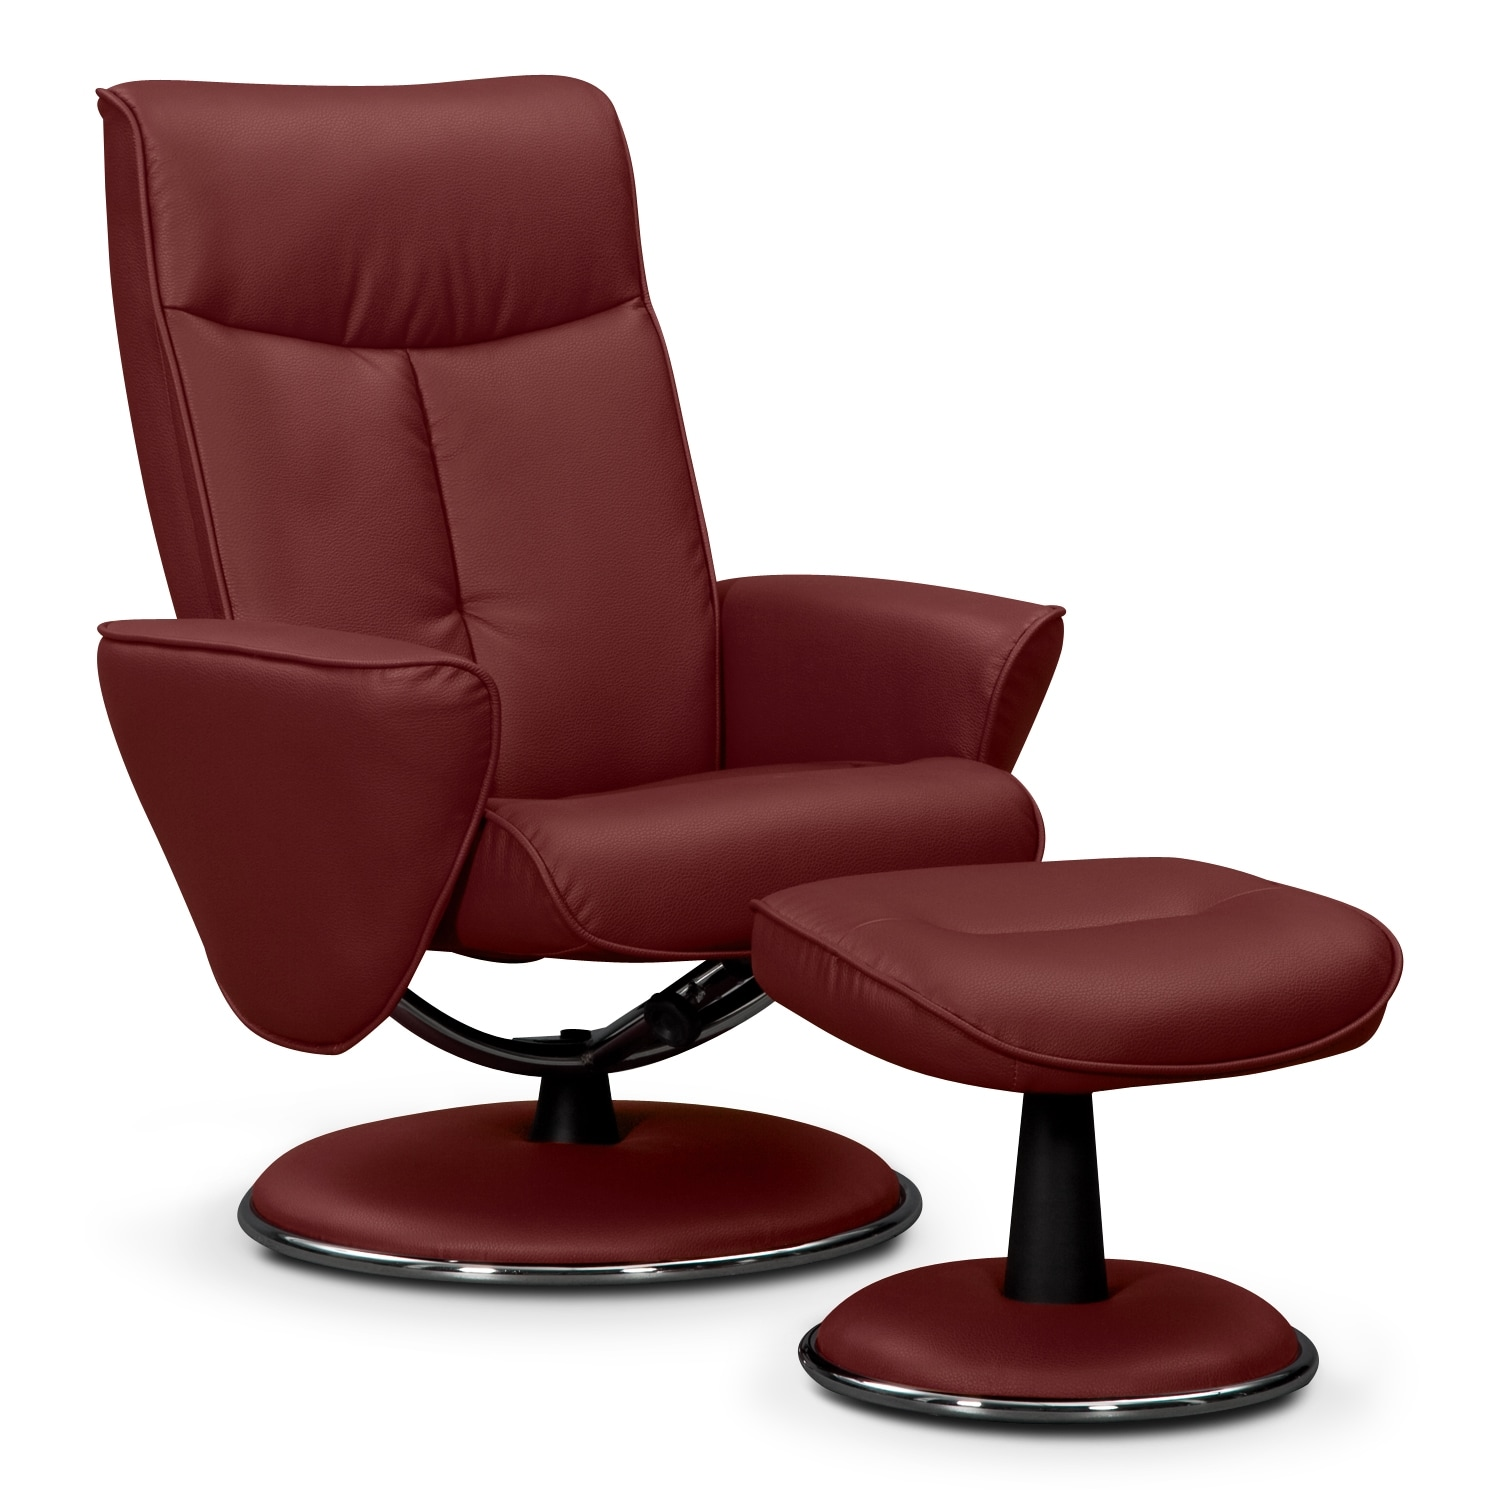 prism leather chair and ottoman value city furniture